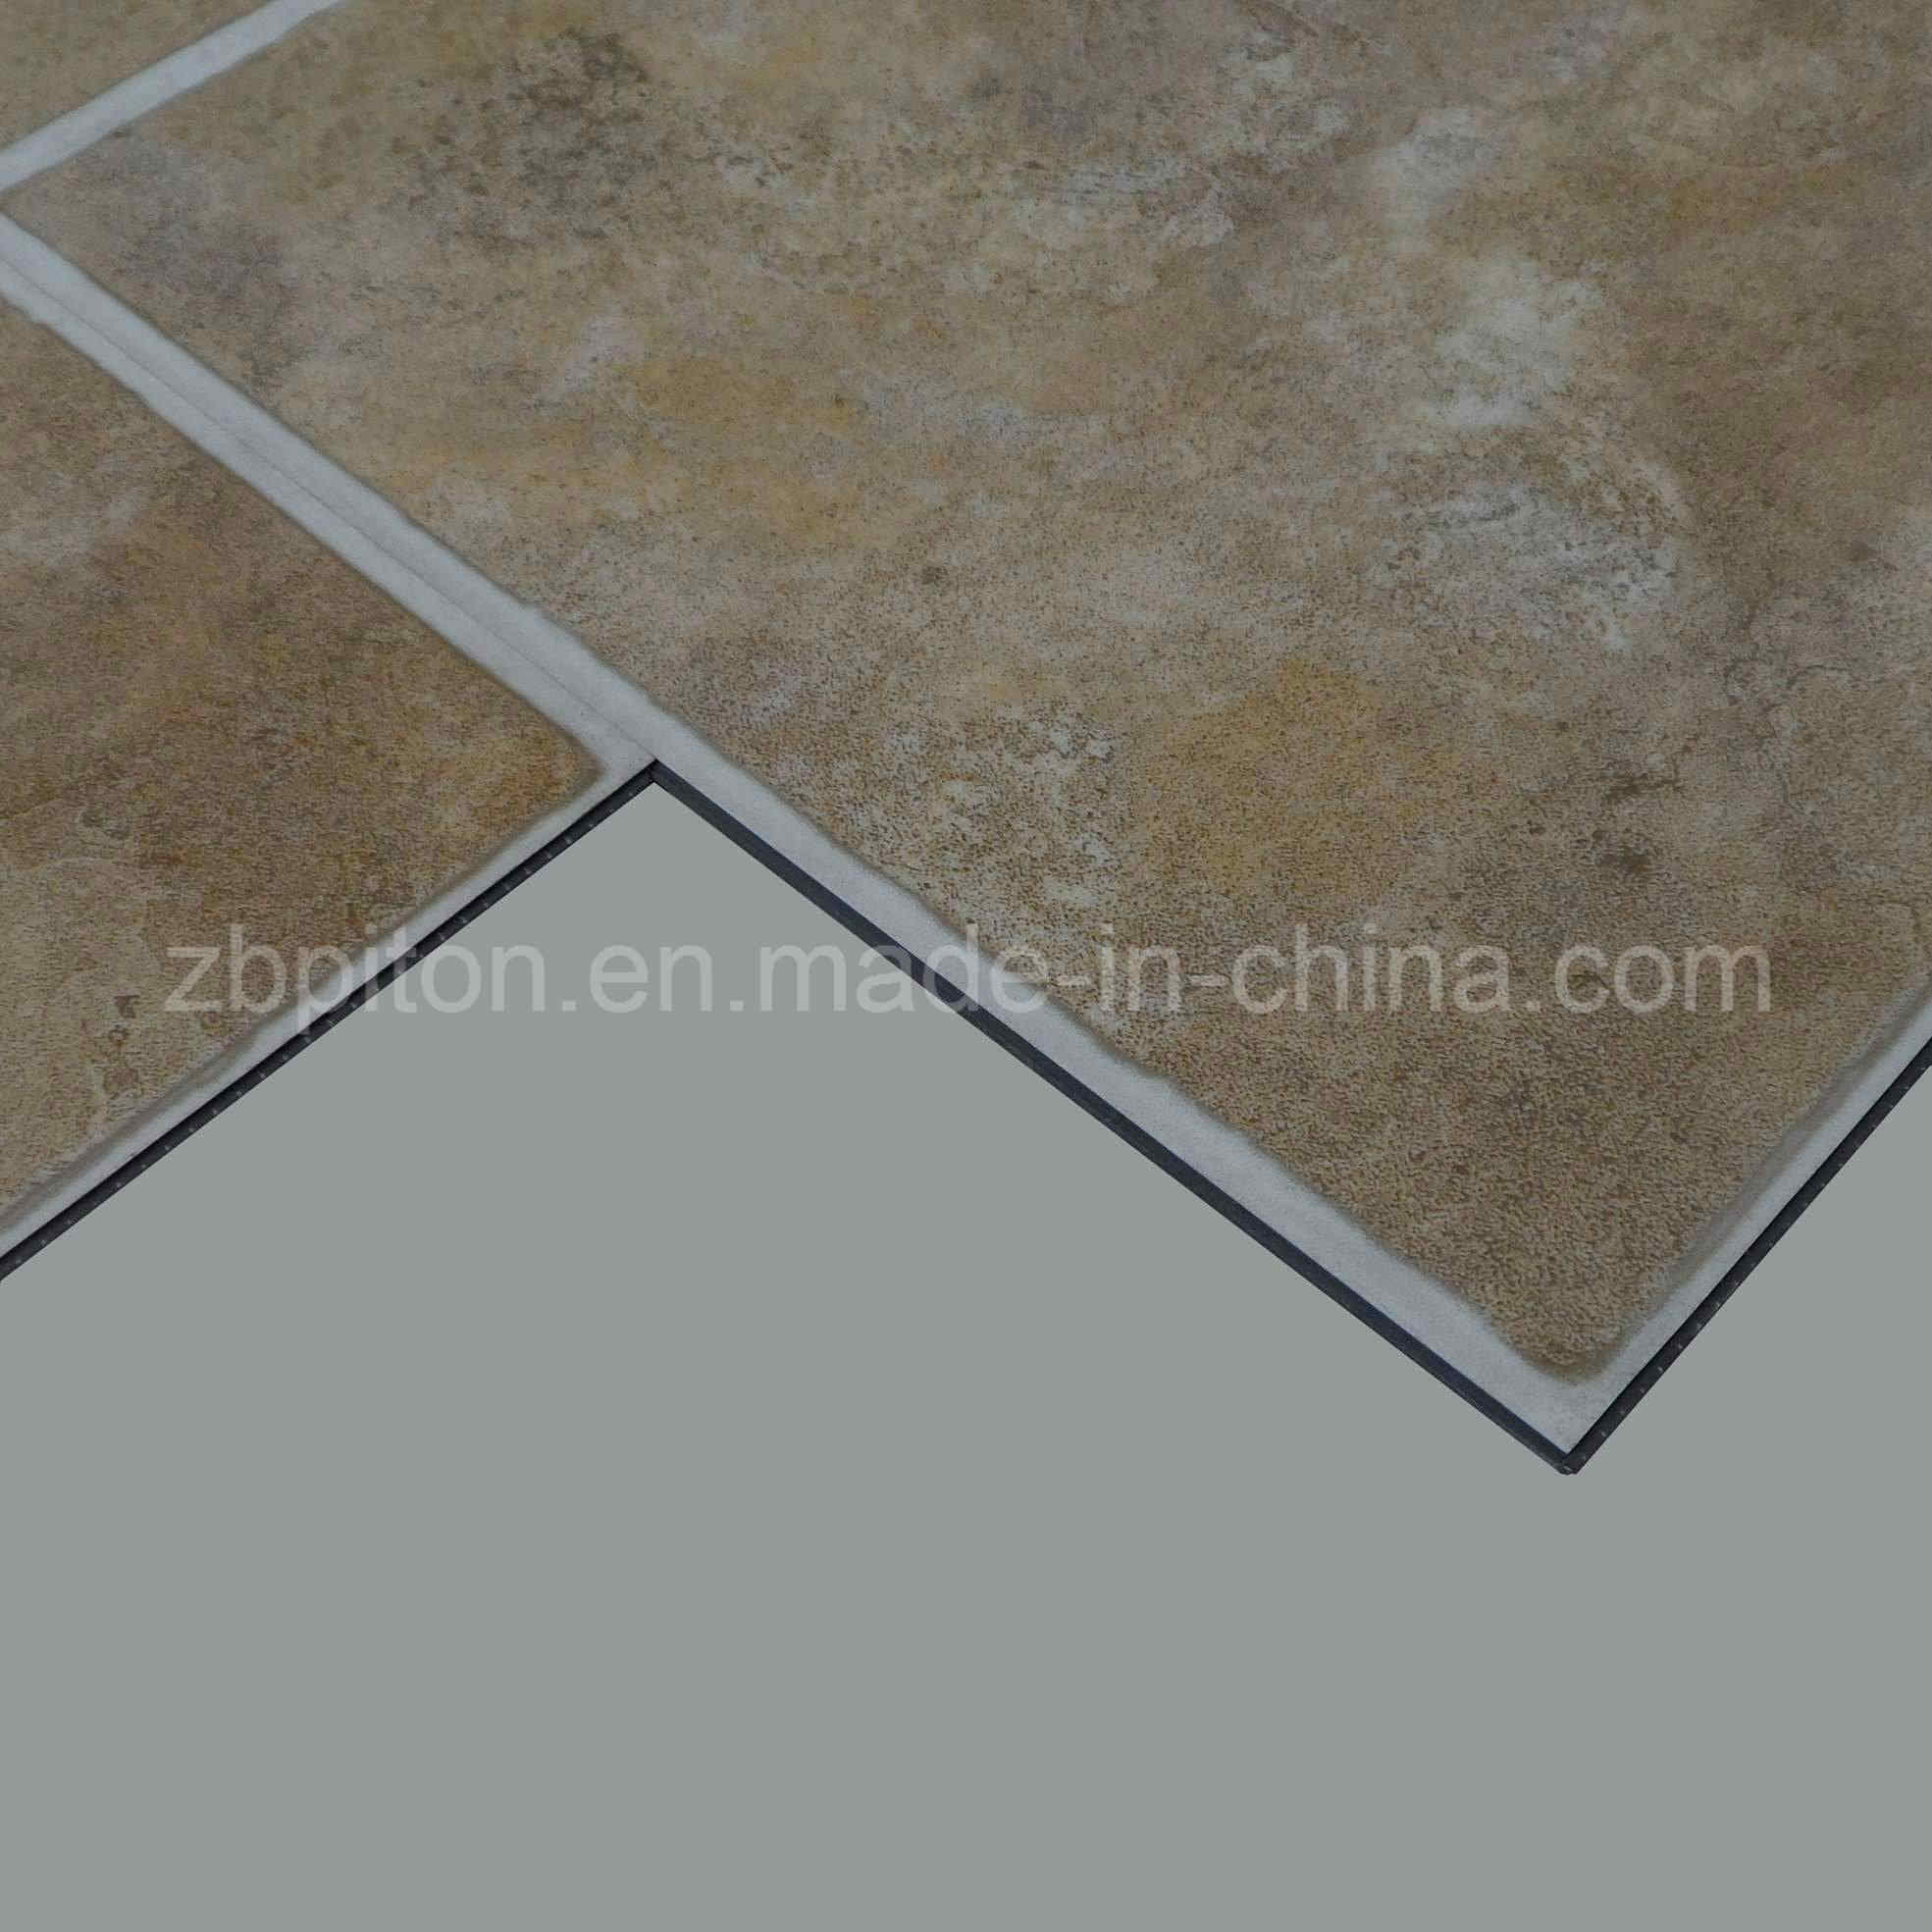 China Easy Install Click Pvc Vinyl Floor Tile China Pvc Vinyl